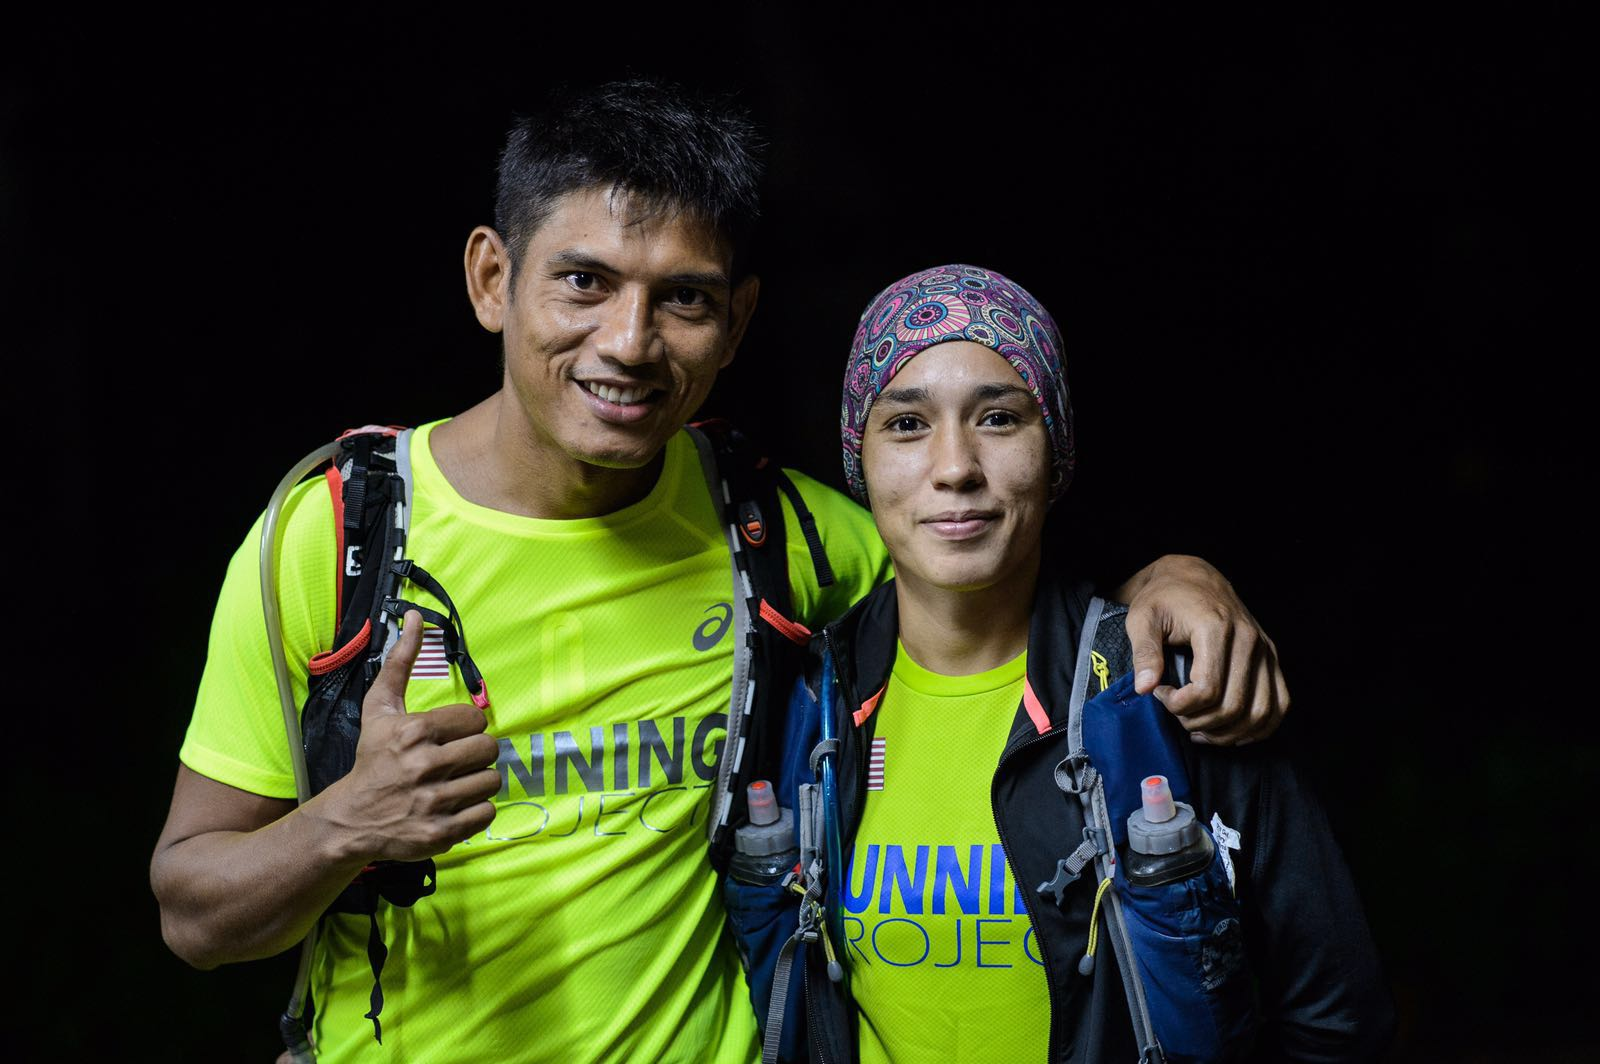 Tahira Najmunisaa can become Asia Trail Master champion this weekend. Her husband Abdul Rahman can jump to the very top of the male standings as well.